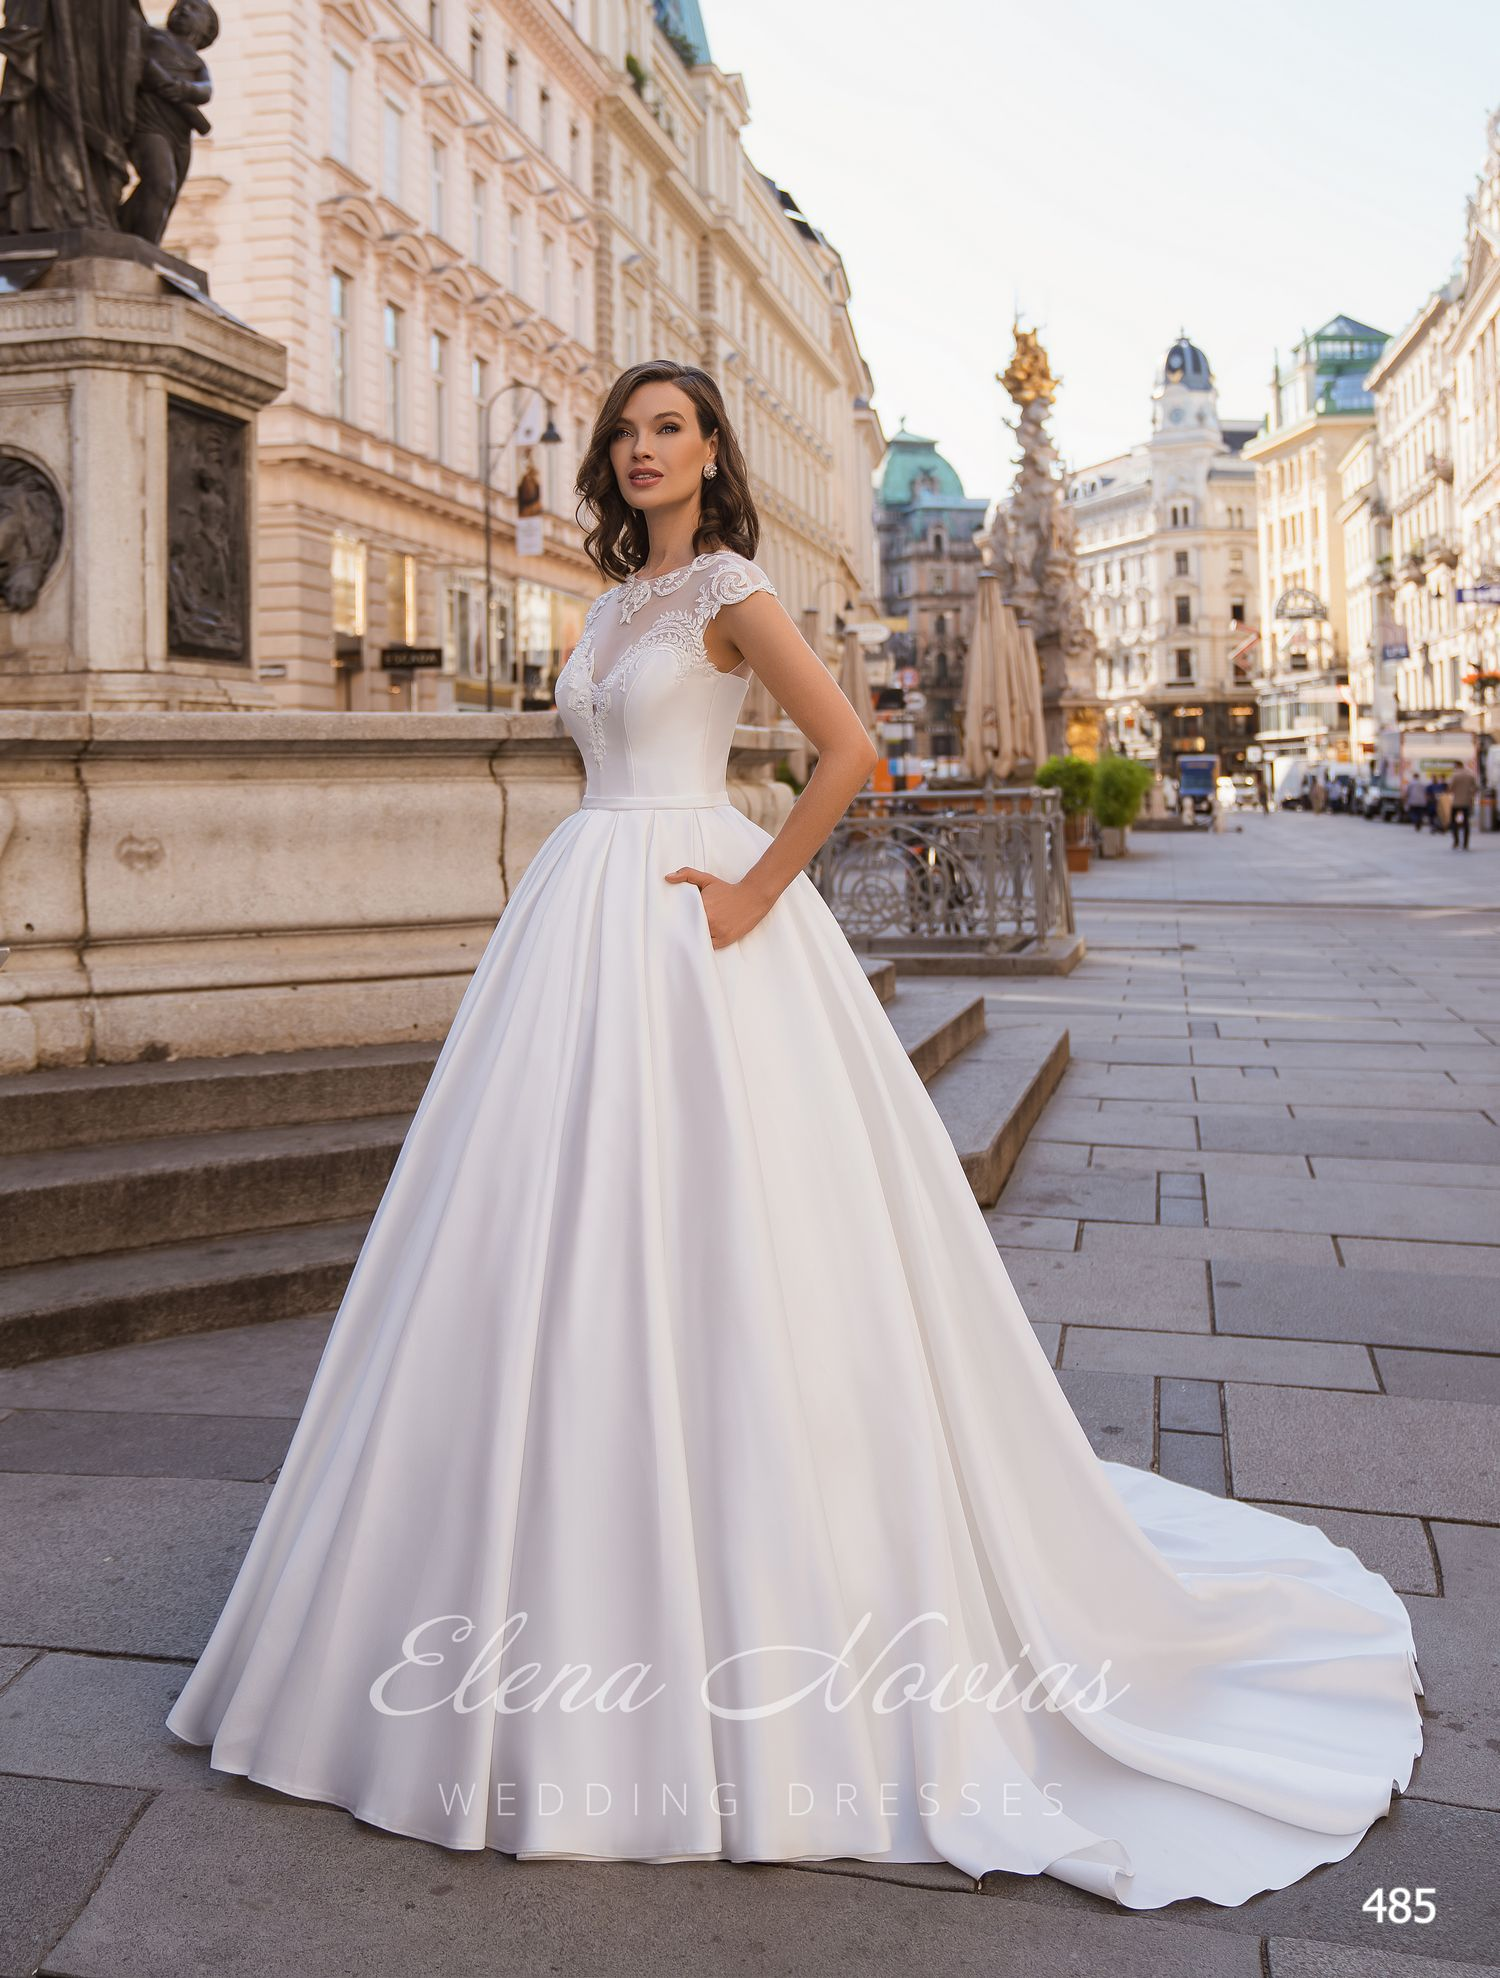 Wedding dresses 485